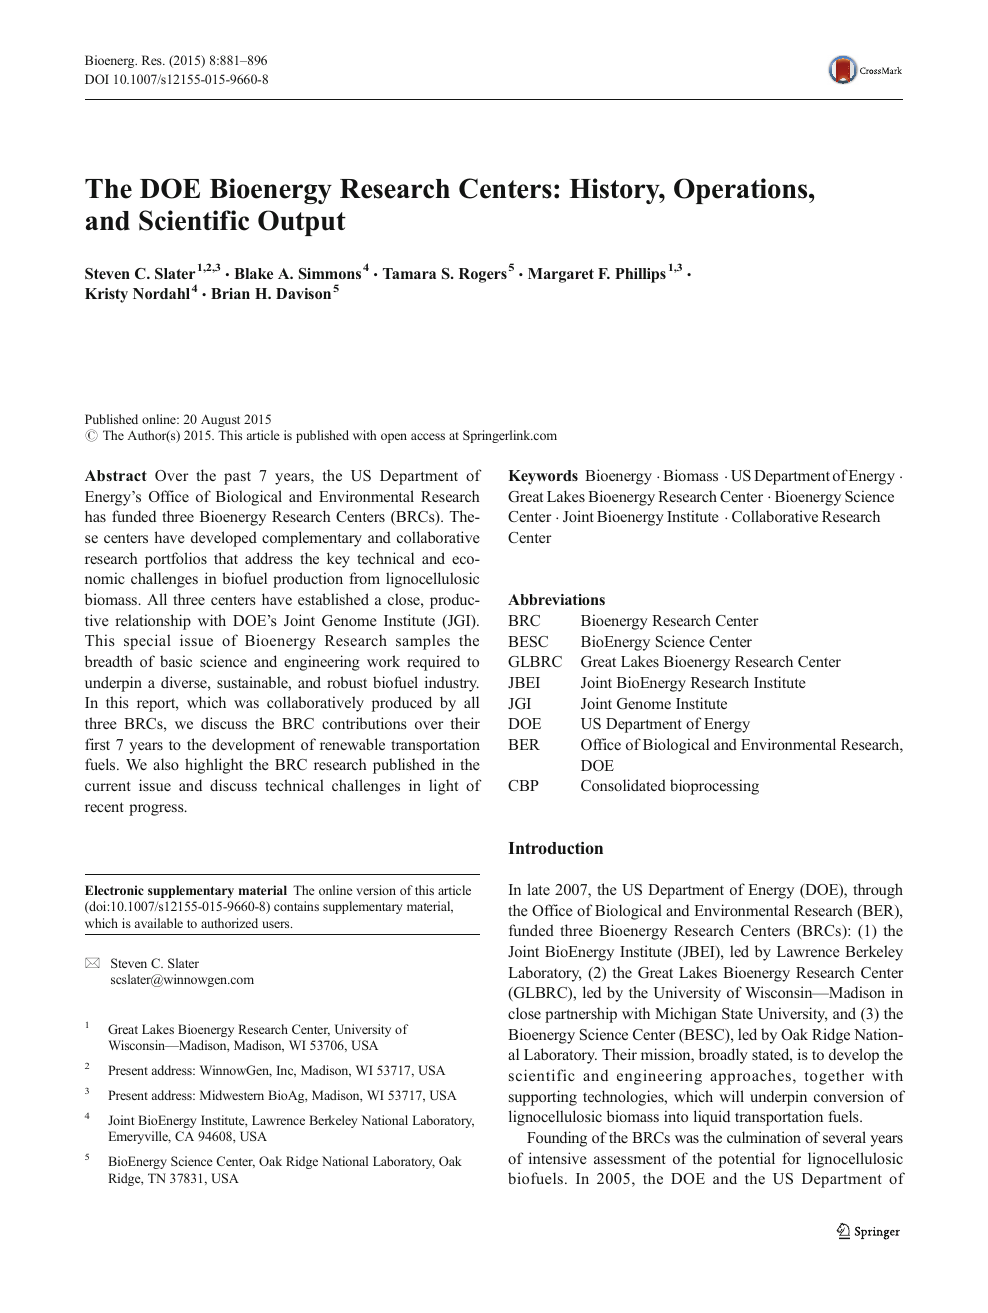 The DOE Bioenergy Research Centers: History, Operations, and